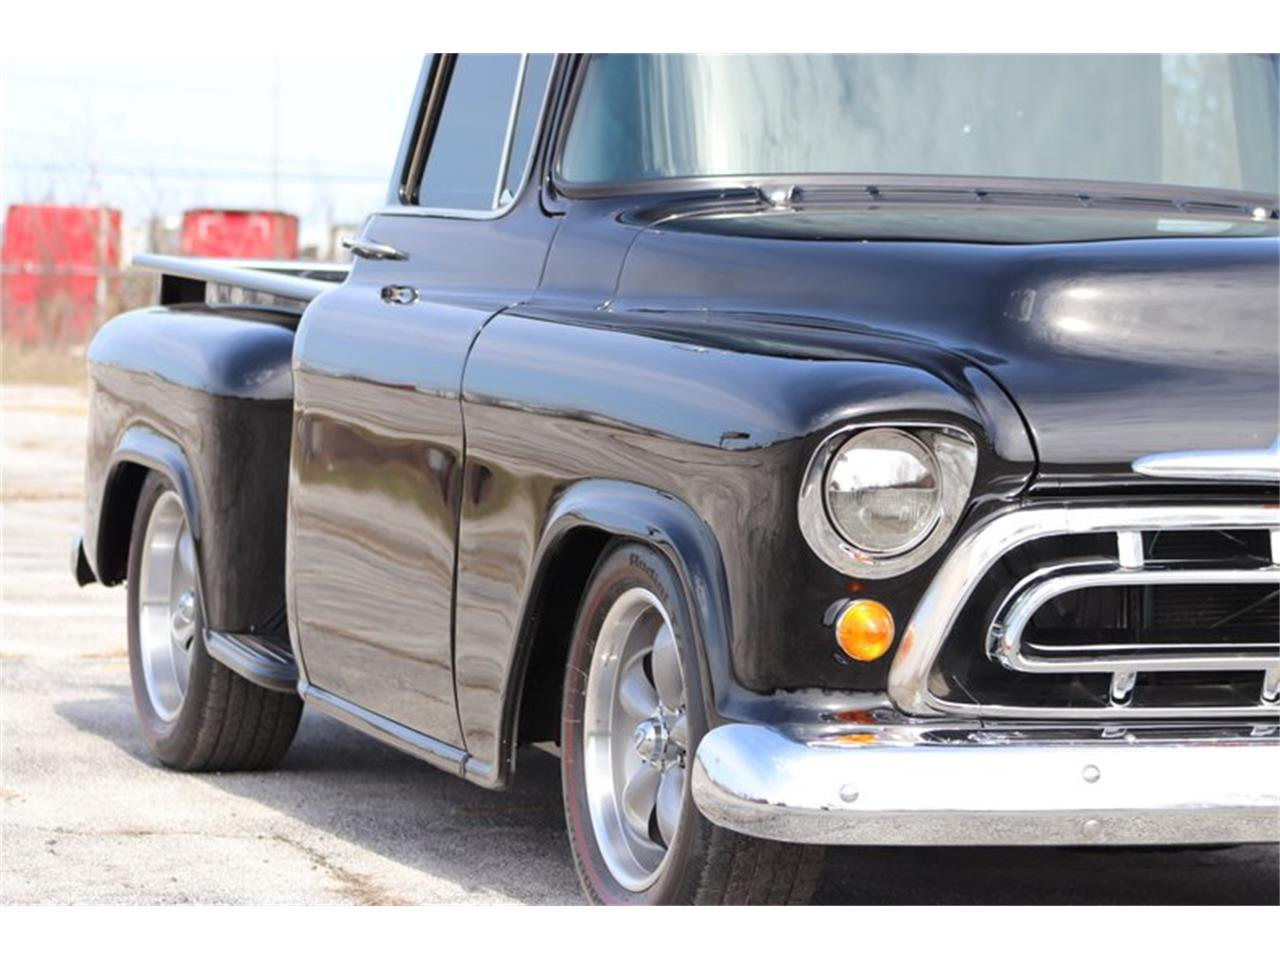 Large Picture of Classic 1957 Chevrolet 3100 located in Alsip Illinois Auction Vehicle Offered by Midwest Car Exchange - PT7T